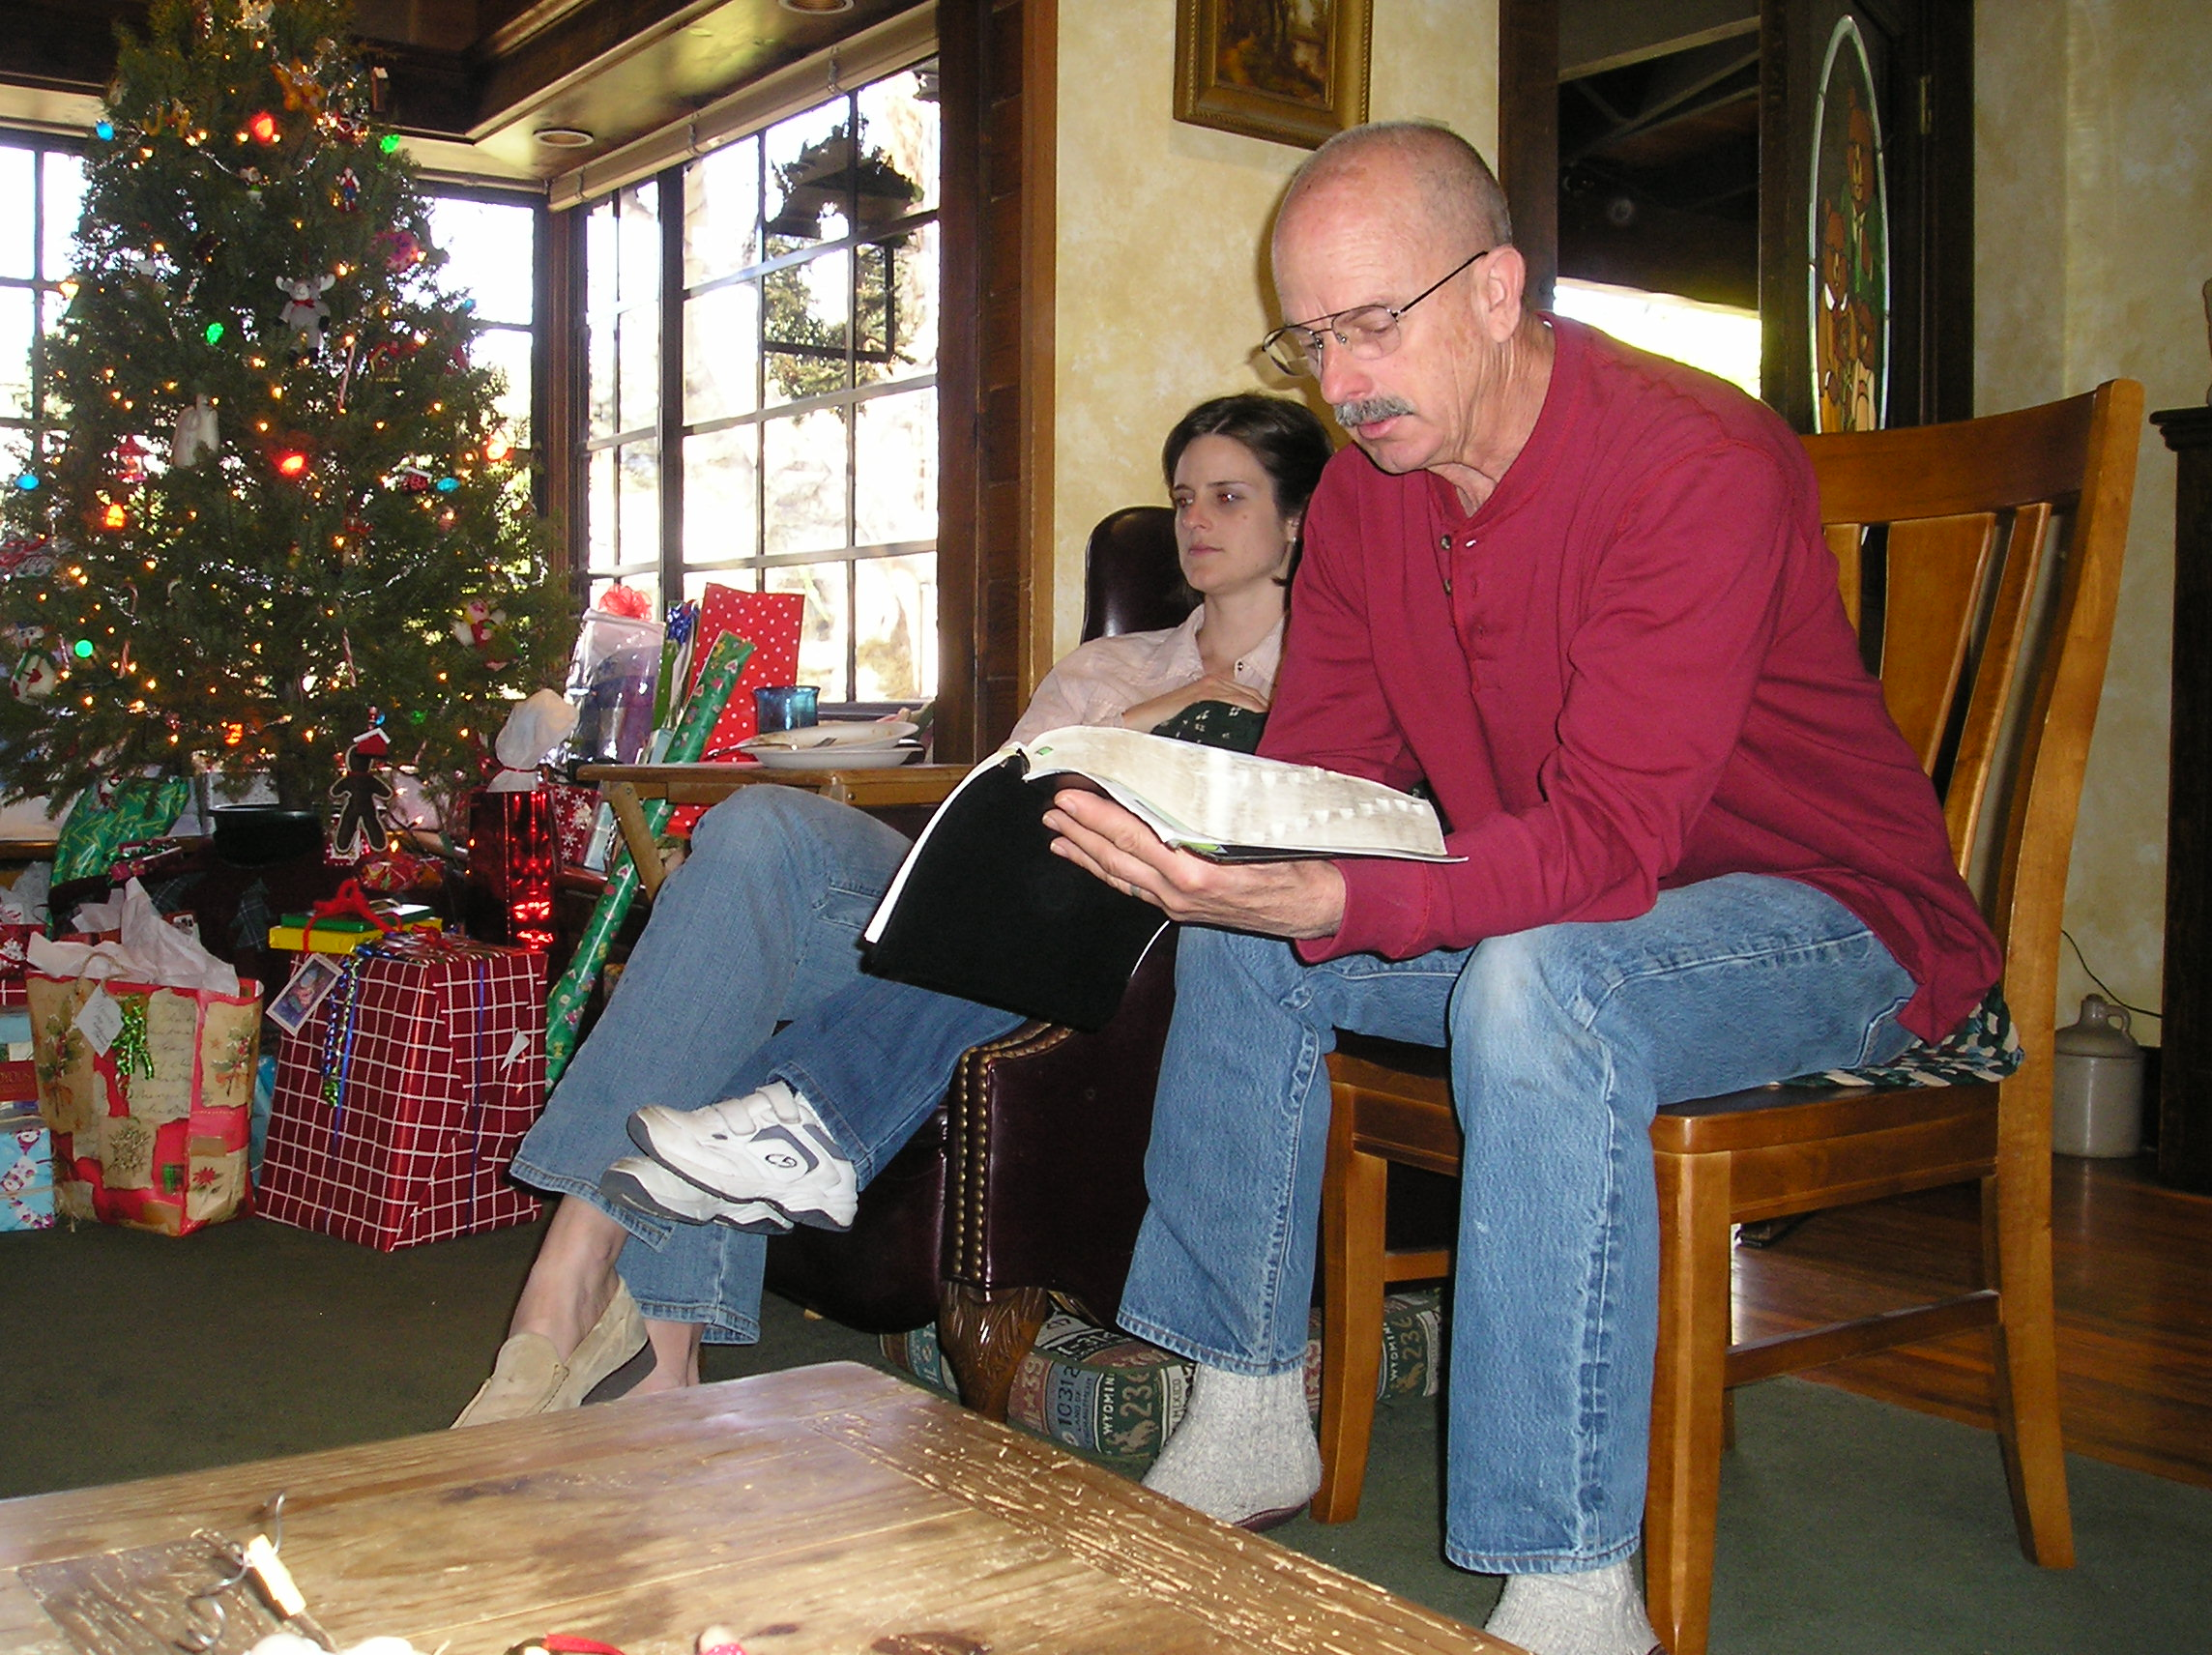 Gary reads the Christmas story to the family way back when we were just beginning the long, difficult process of finding out the cause of his cognitive impairment.